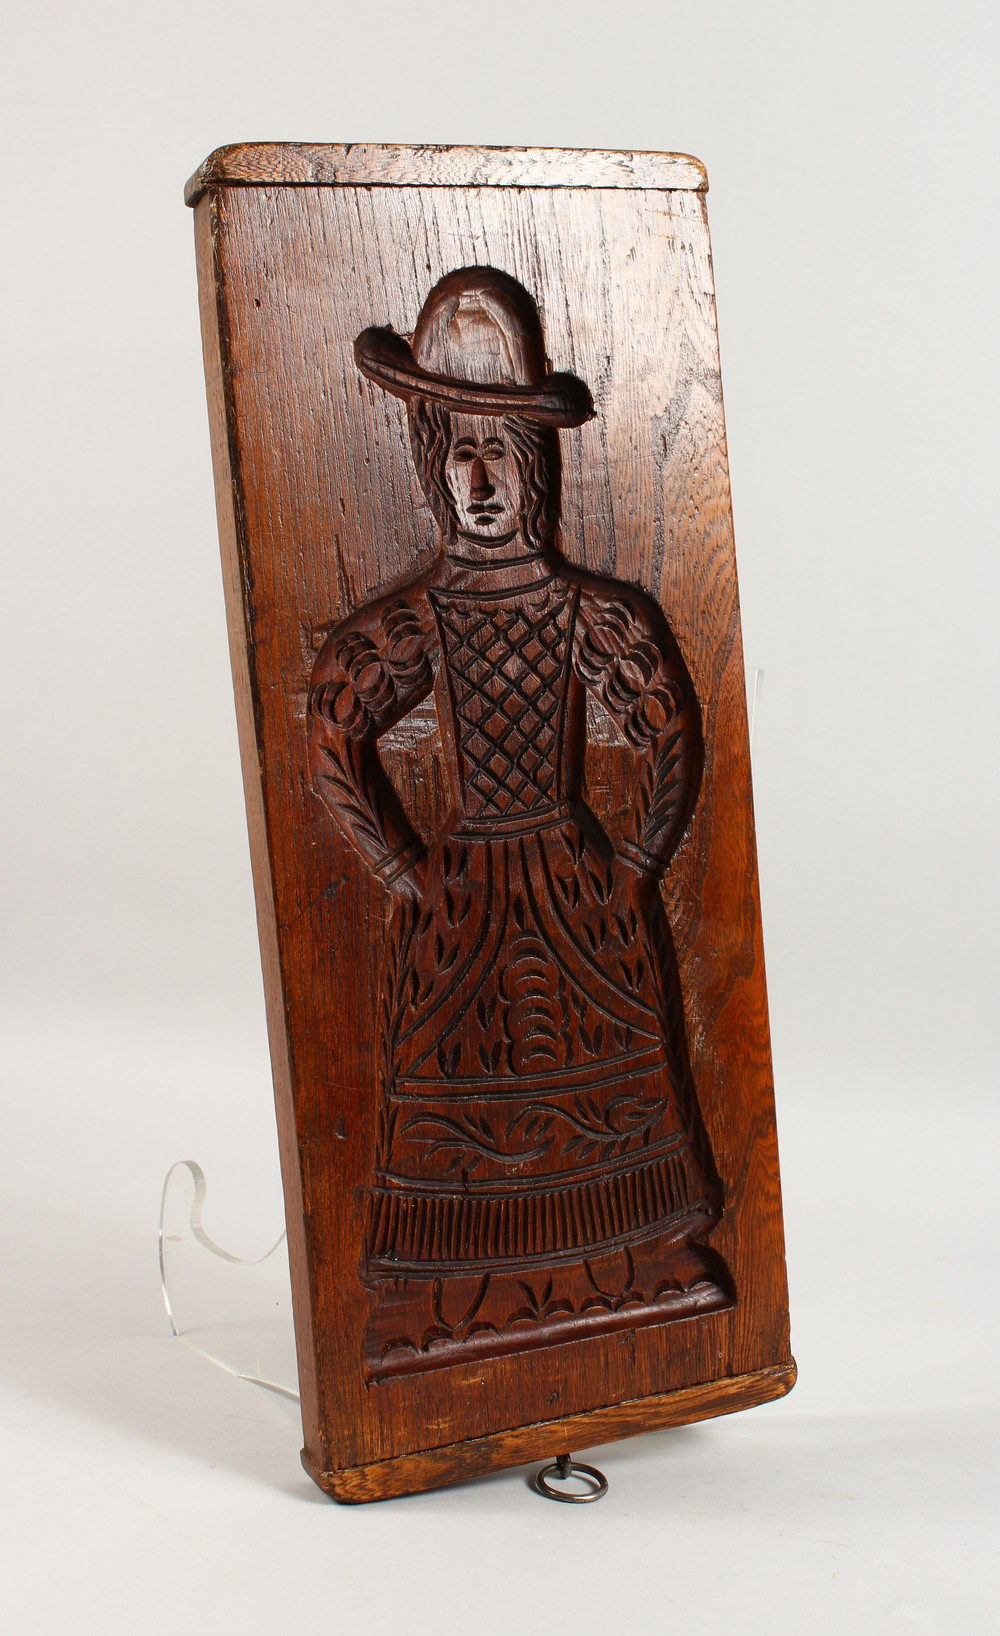 Lot 1551 - A 19TH CENTURY DOUBLE SIDED ELM GINGERBREAD MOULD, carved with a man and a woman. 18.5ins x 7.5ins.